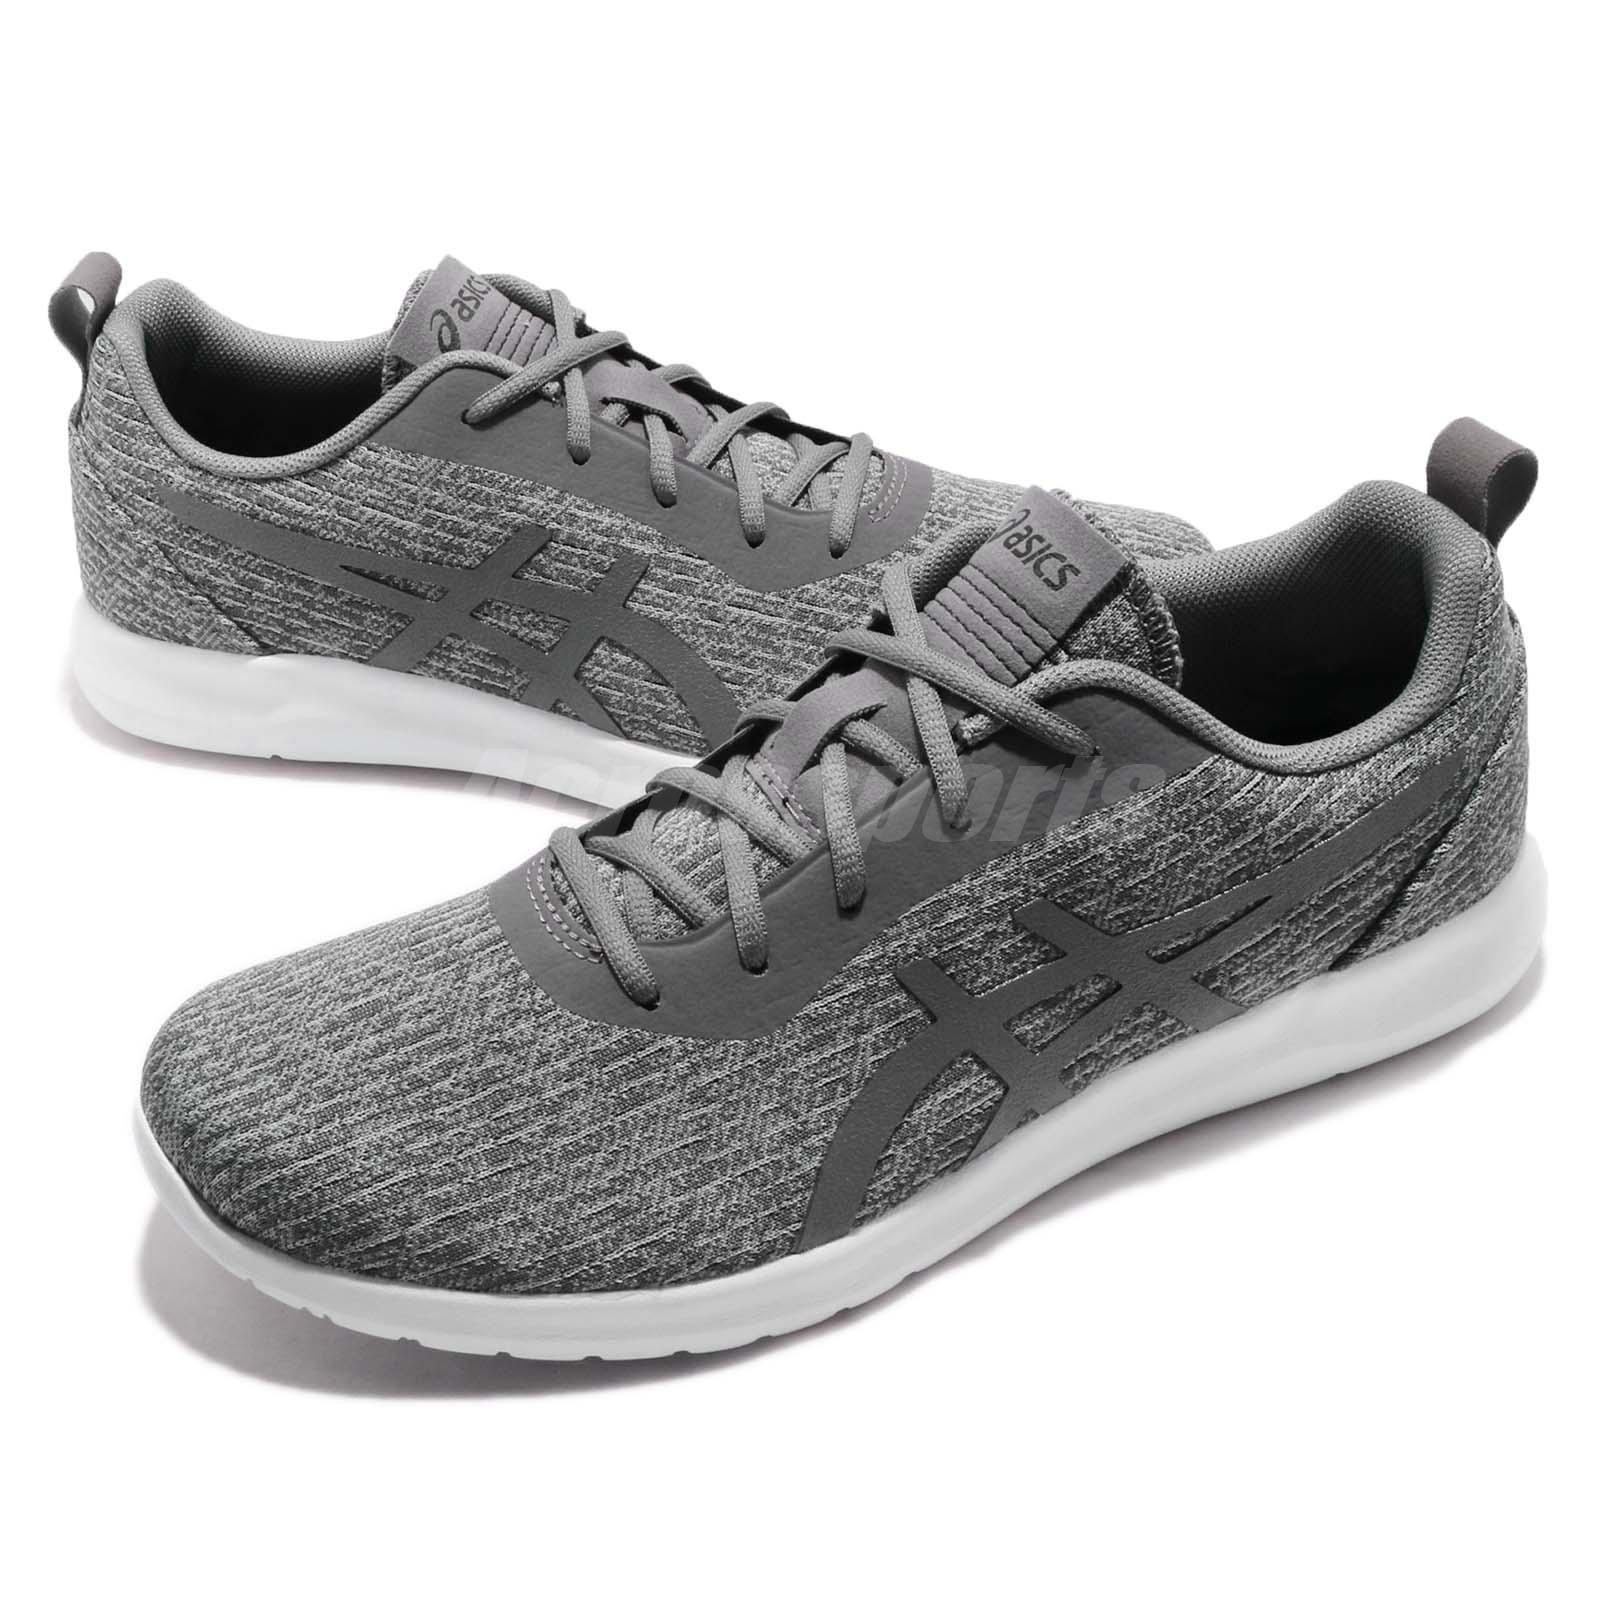 Details about Asics Kanmei 2 Carbon Grey White Mens Running Shoes  1021A011-020